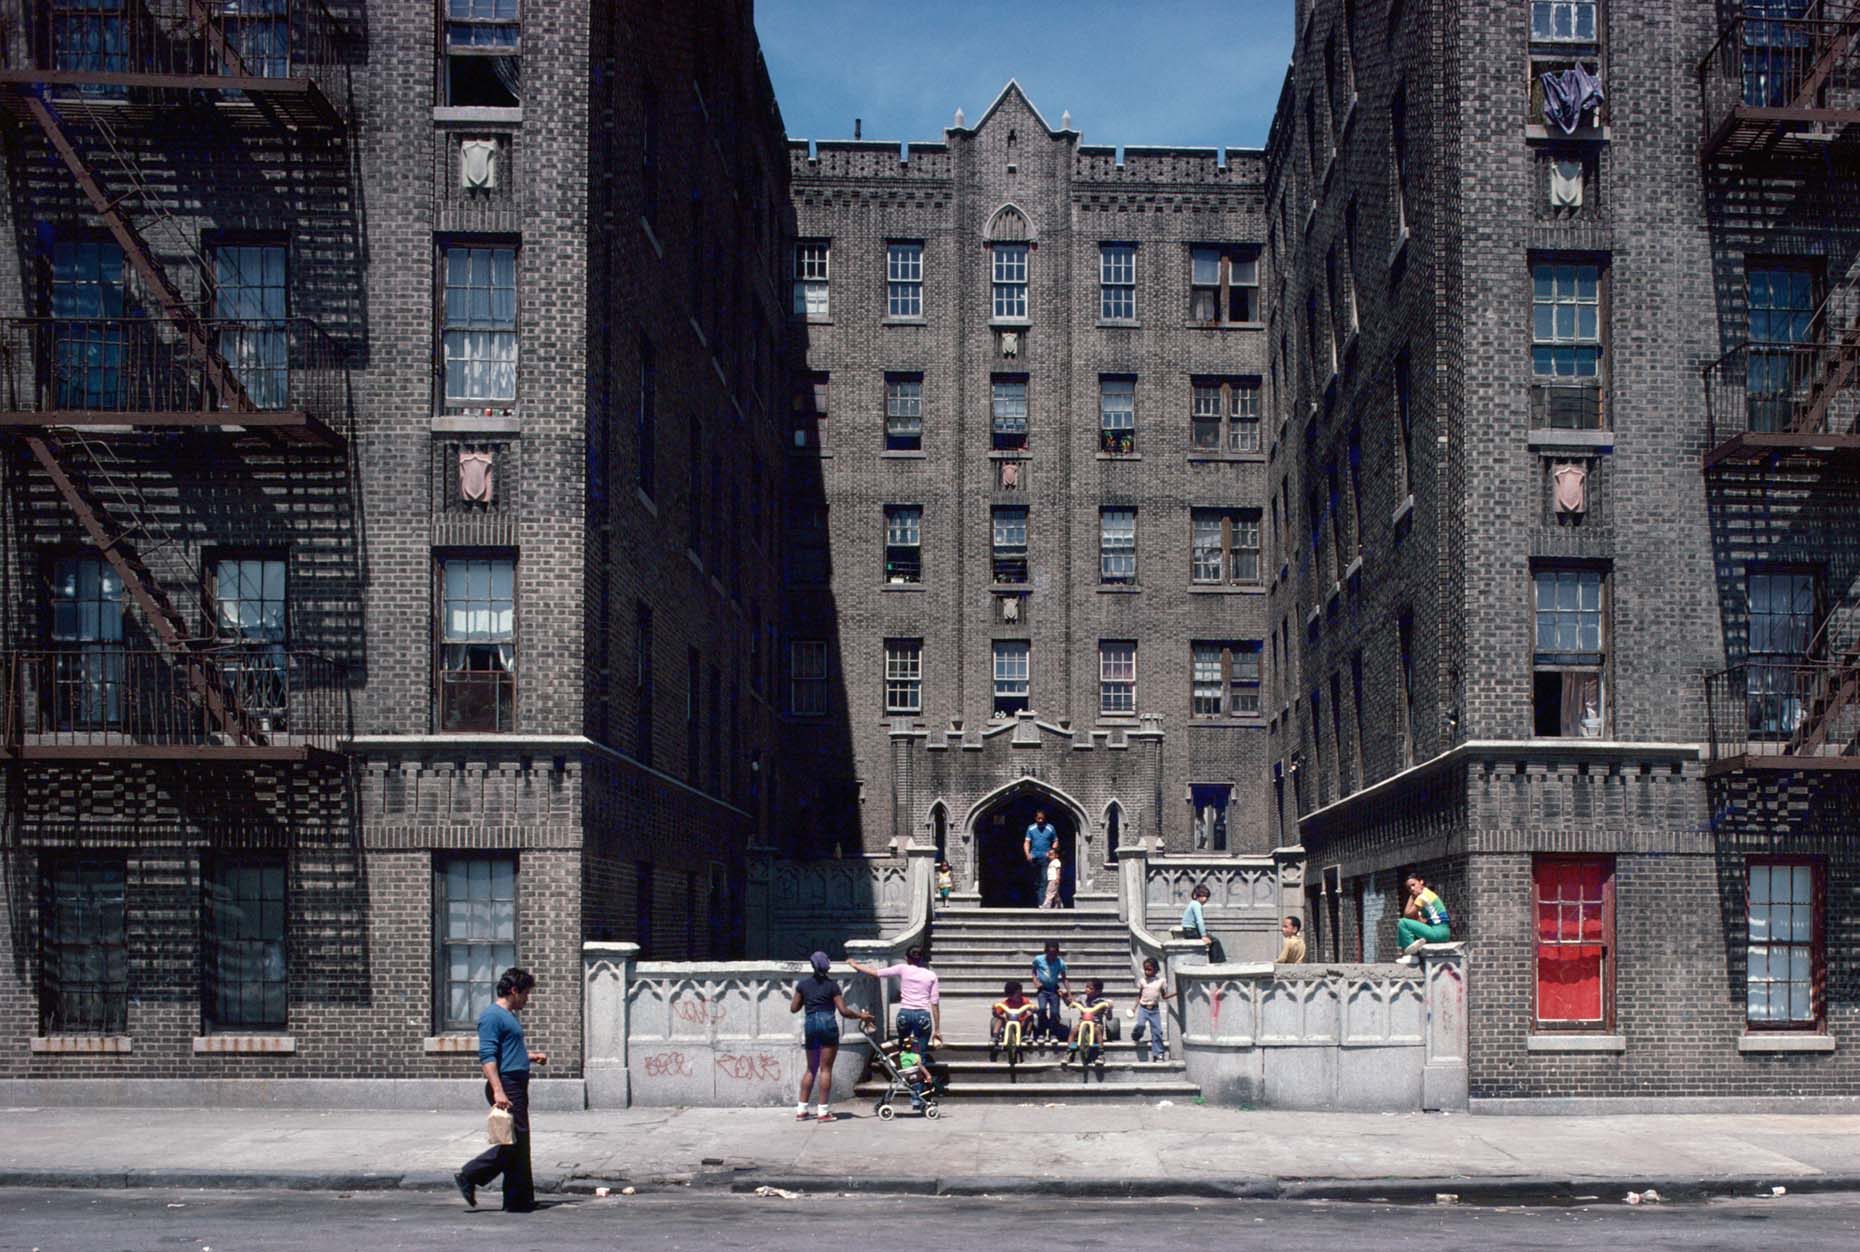 01_Vyse Ave at East 178th St, Bronx, N Y, June 1980_-DUP2.jpg